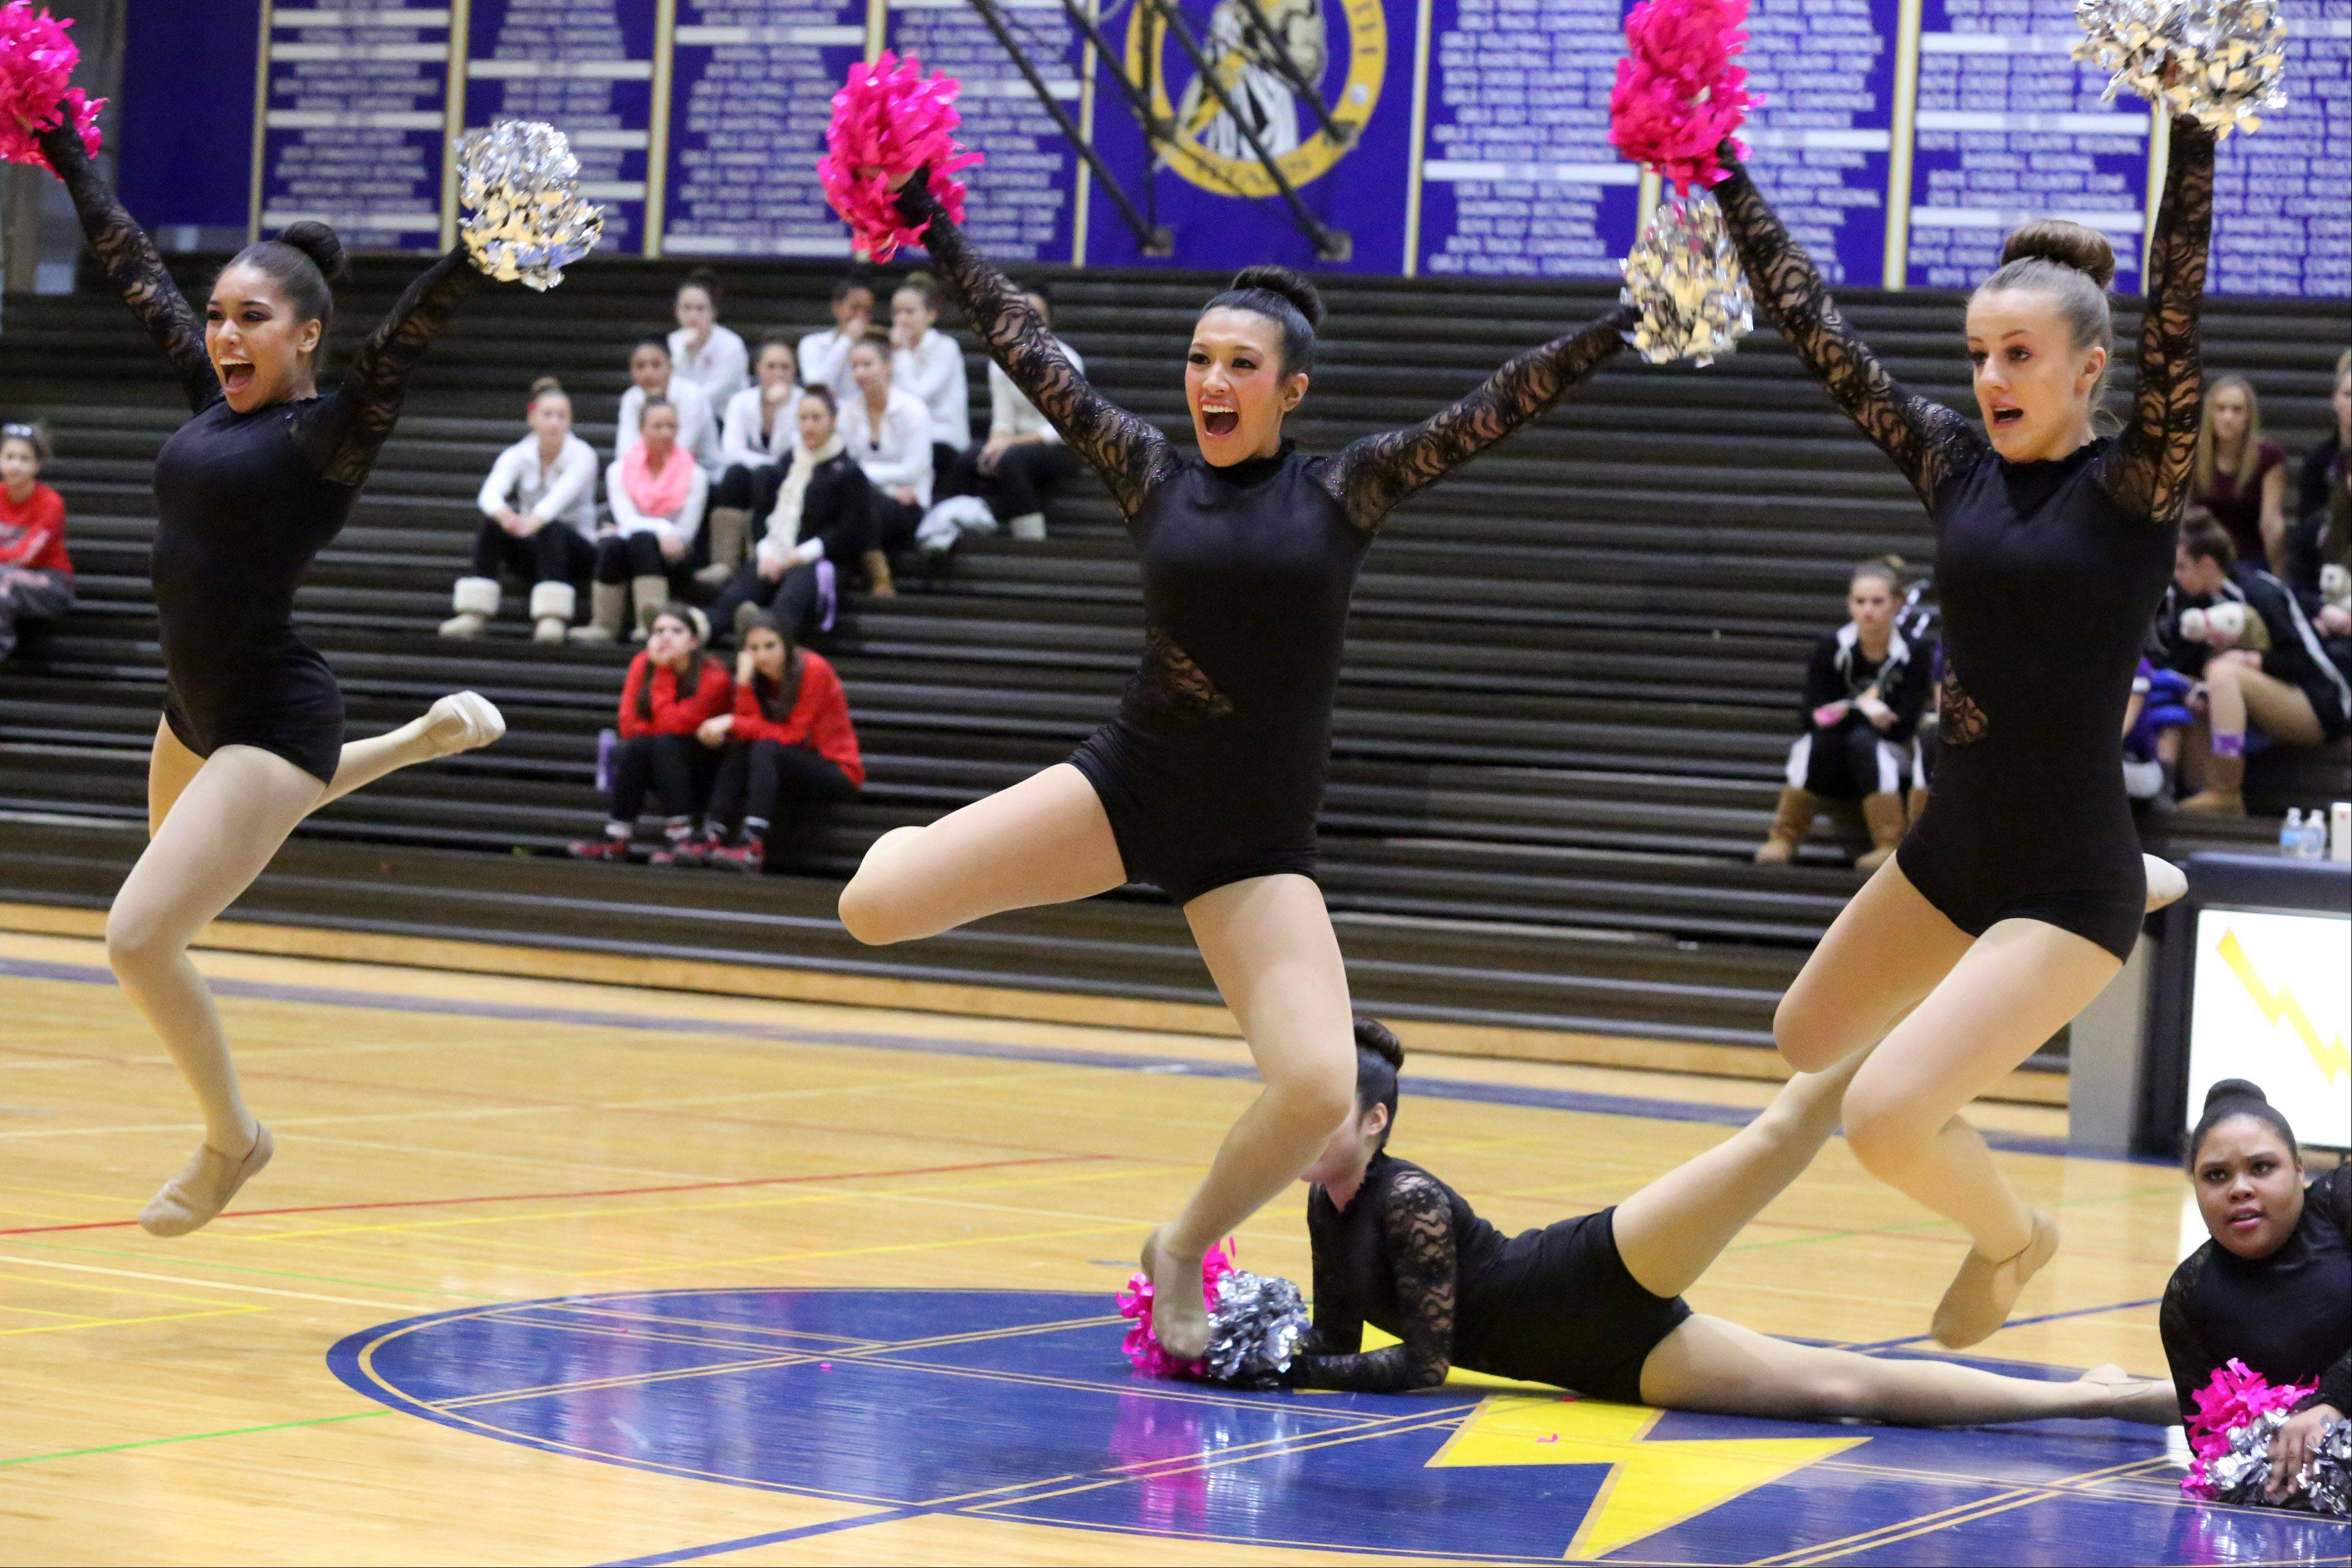 Maine East High School's dance team competes at the IHSA competitive dance sectional at Glenbrook South High School on Saturday in Glenview.